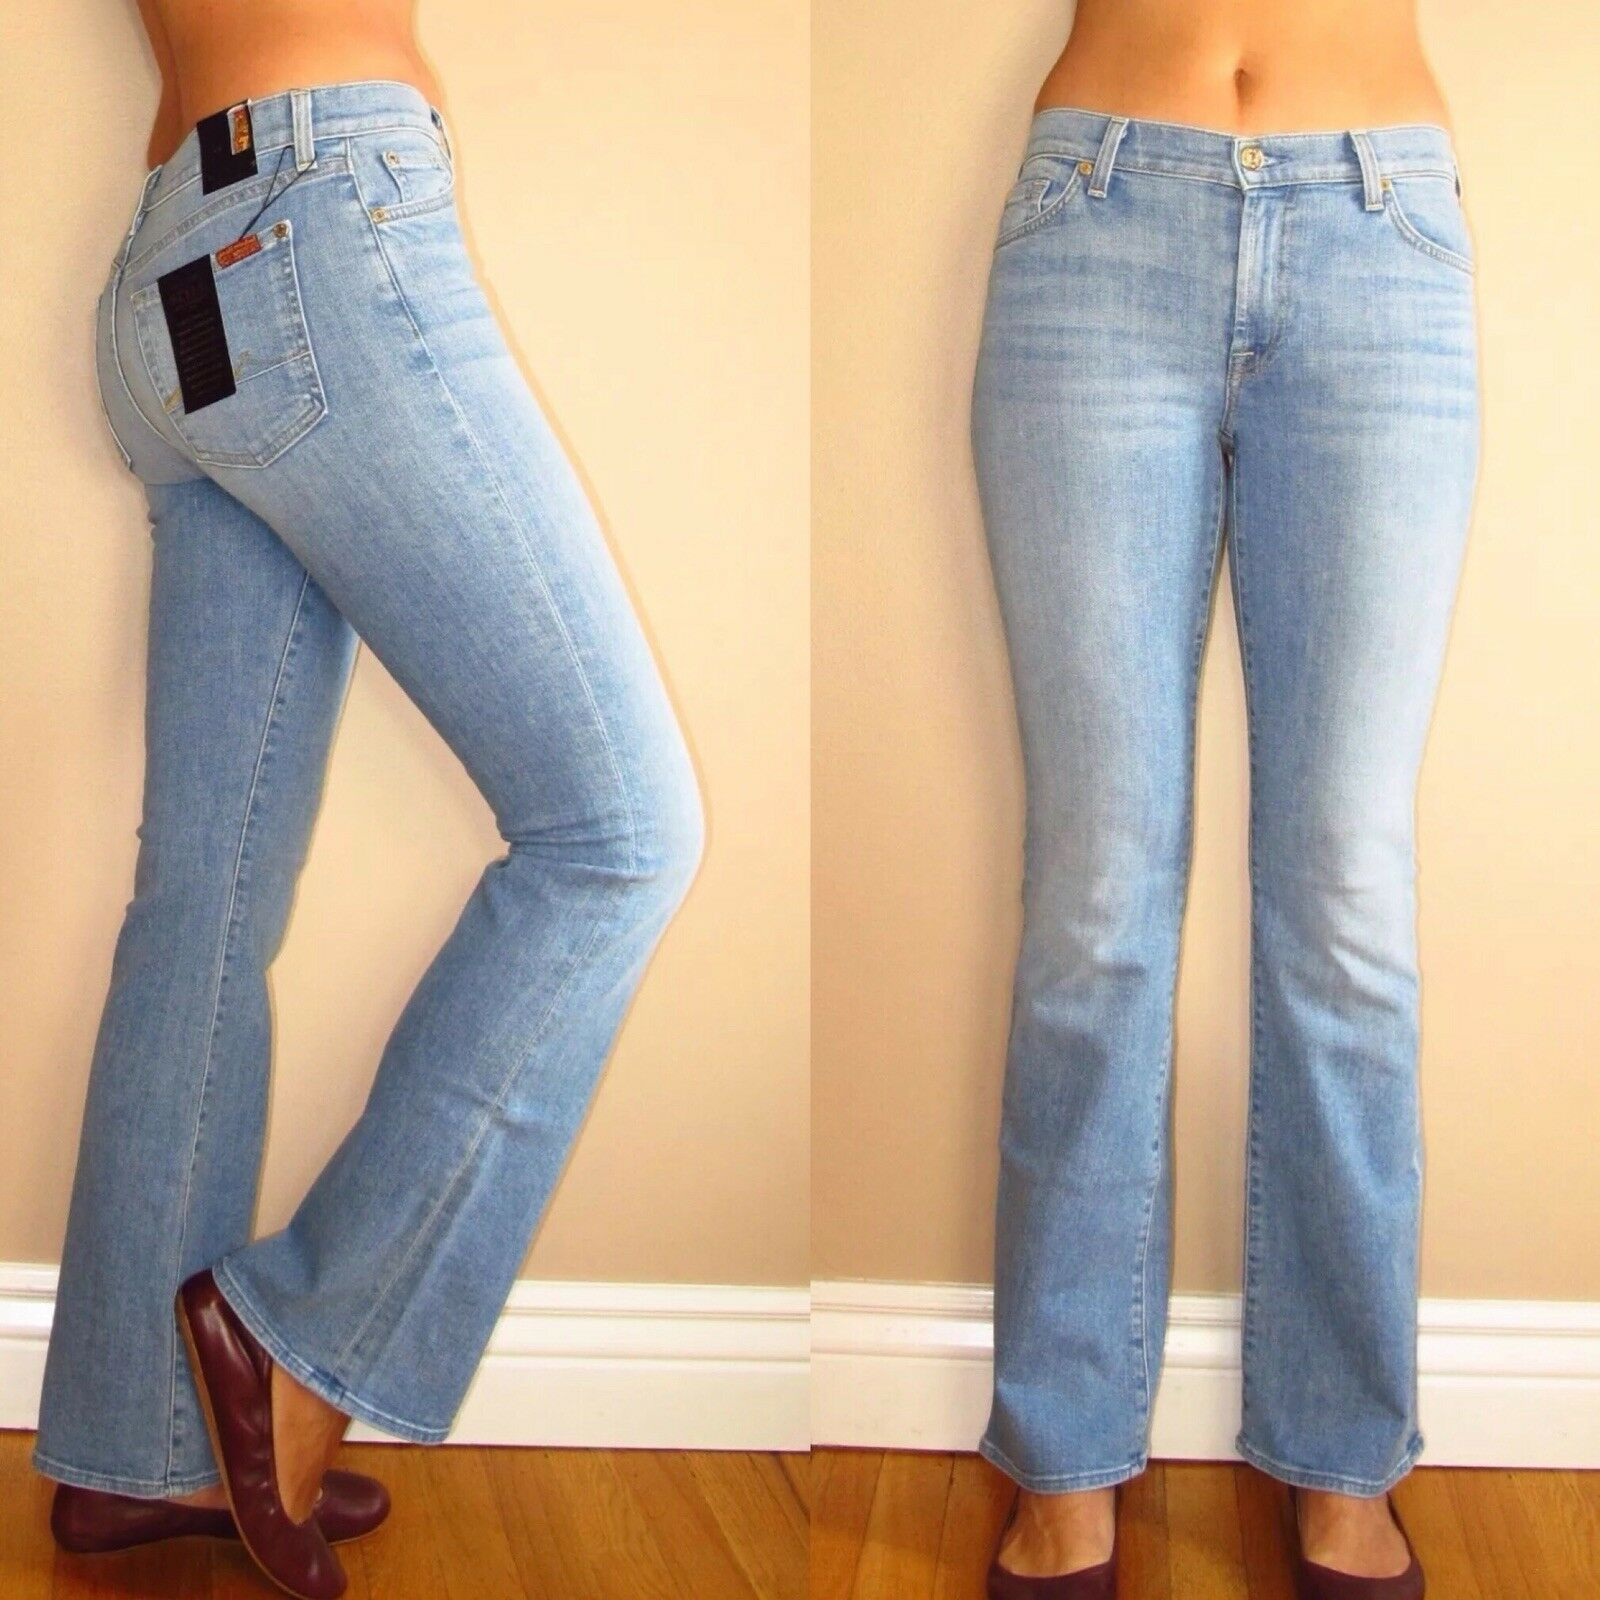 New 7 For All Mankind Bootcut Petite Tailorless Womens Jeans Light Wash 24